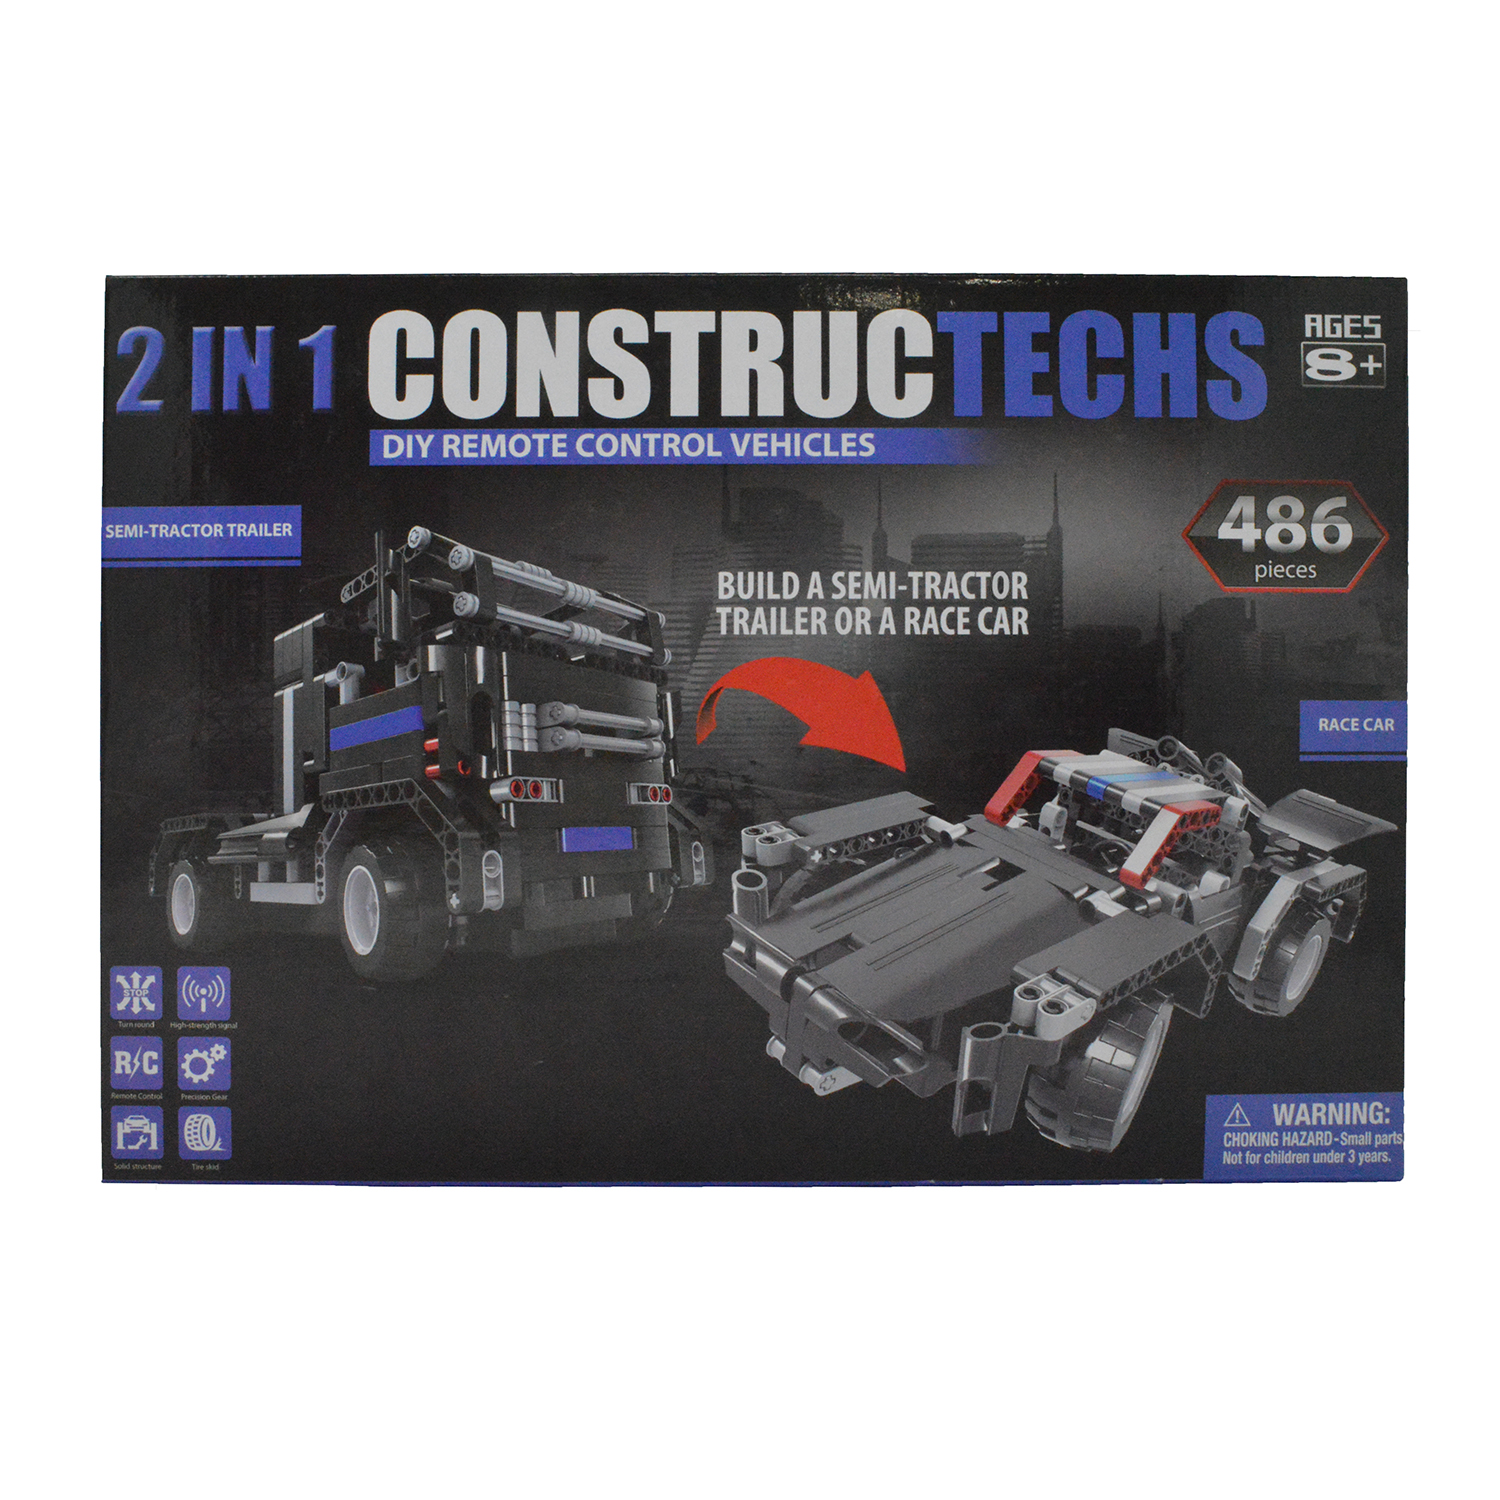 2 in 1 Constructechs DIY Remote Control Vehicles Semi-Tra...